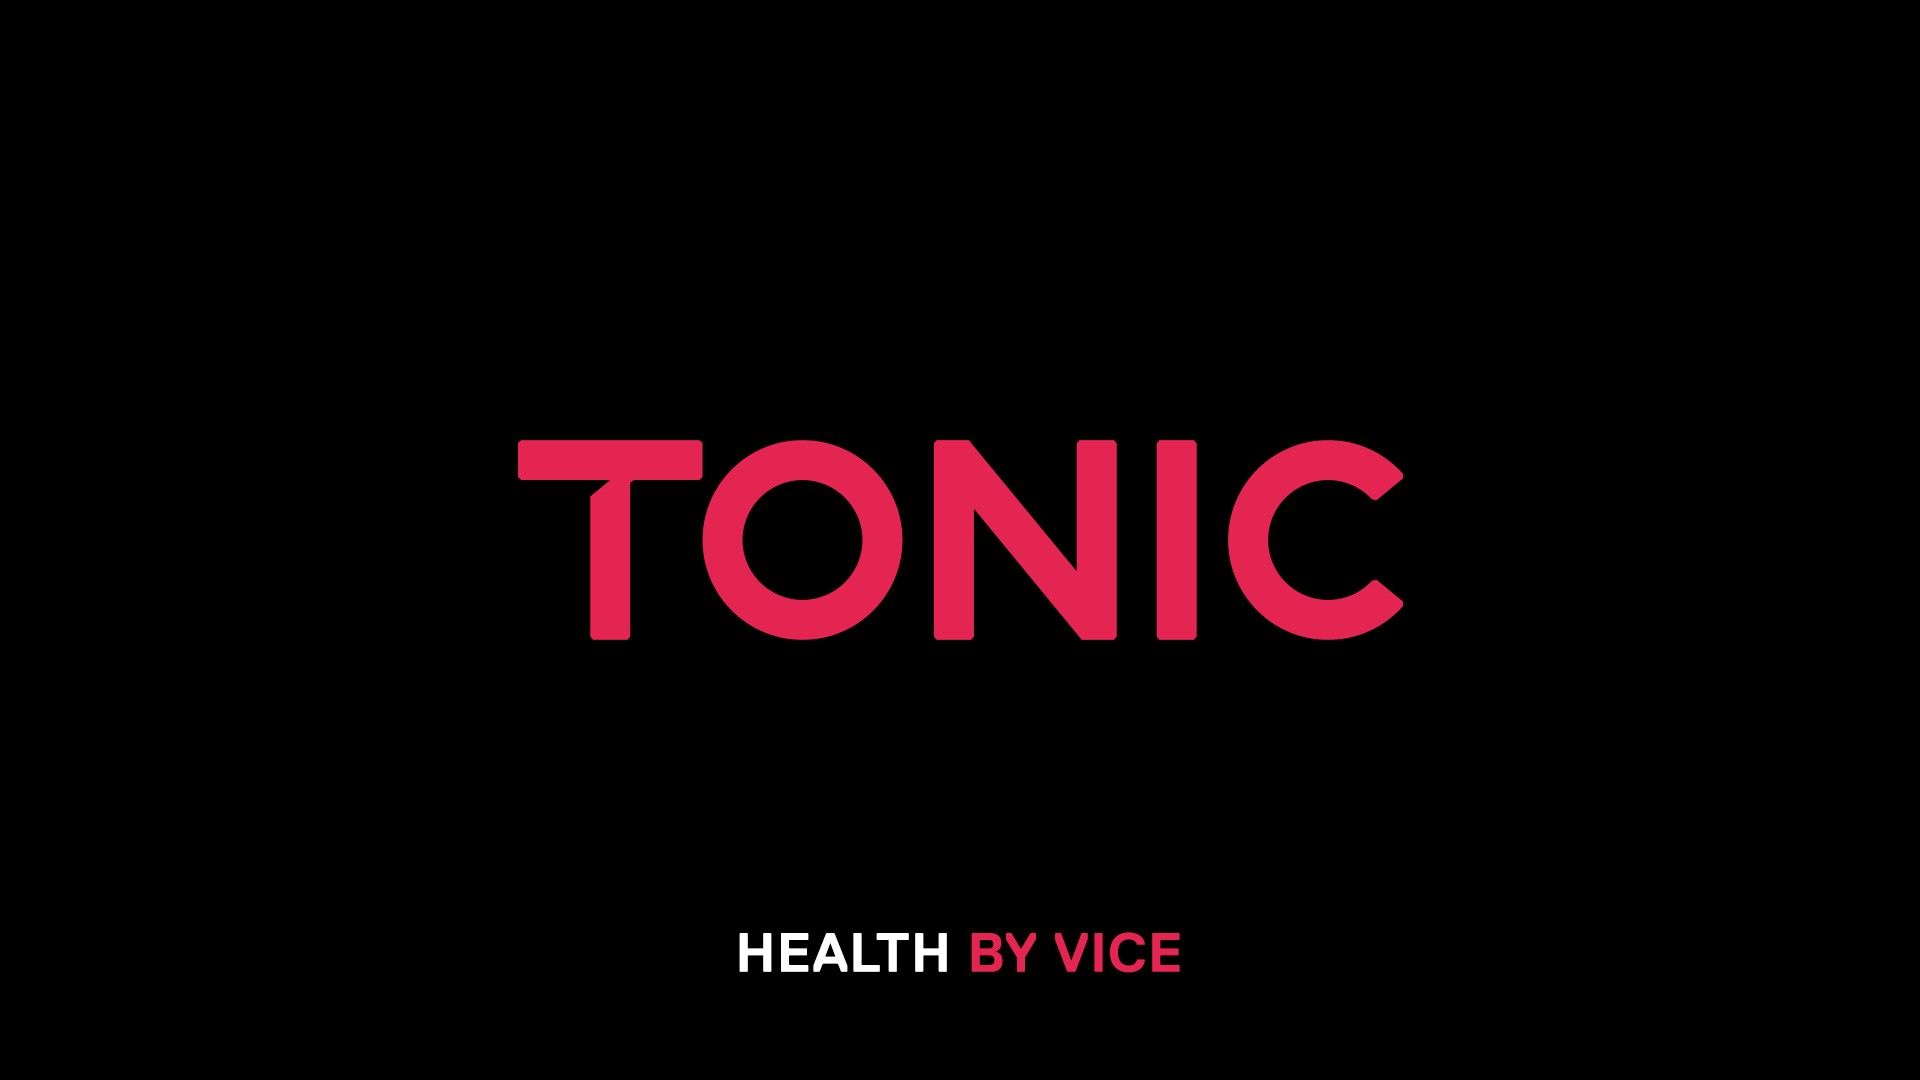 Welcome to Tonic